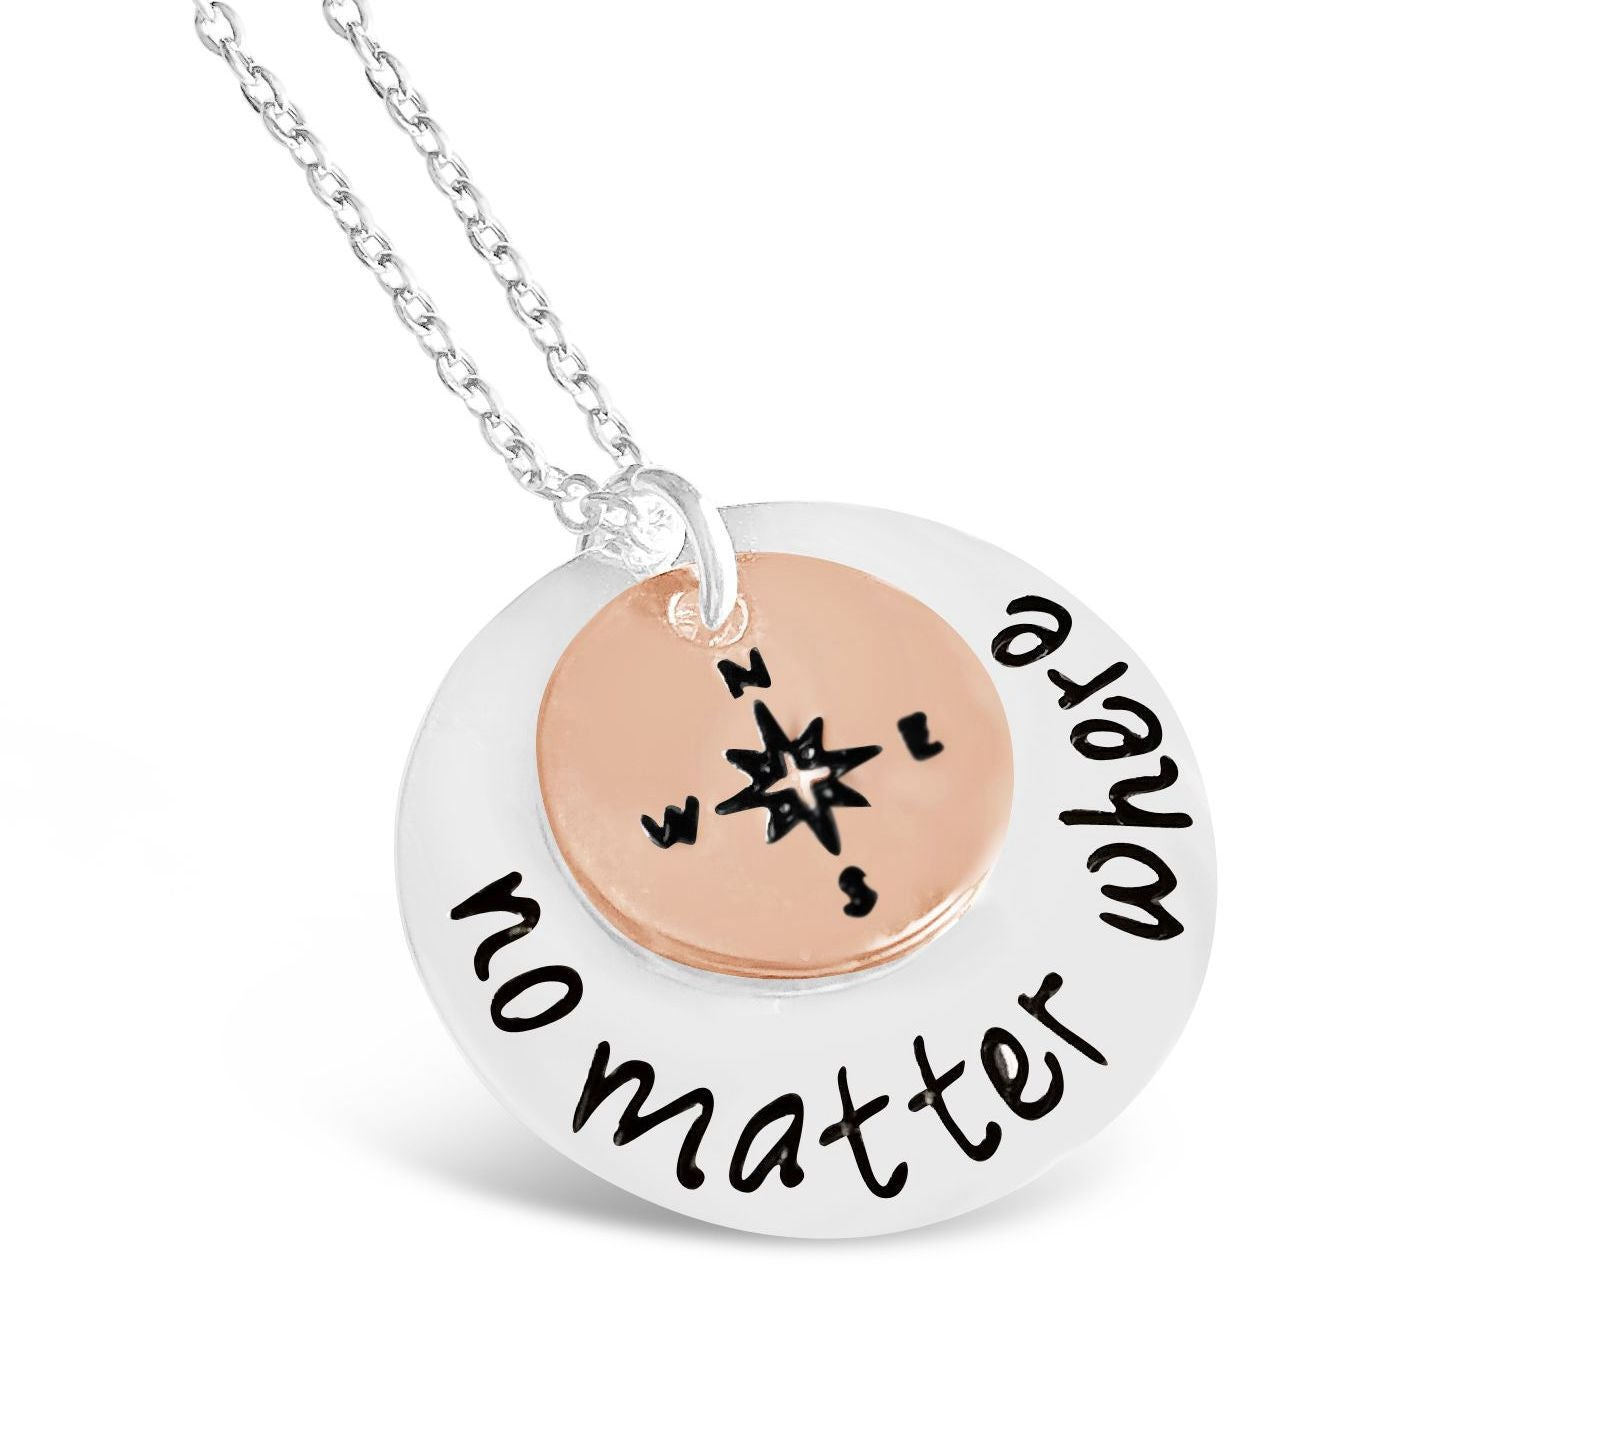 direction compass jewellery dreams necklace mantra silver